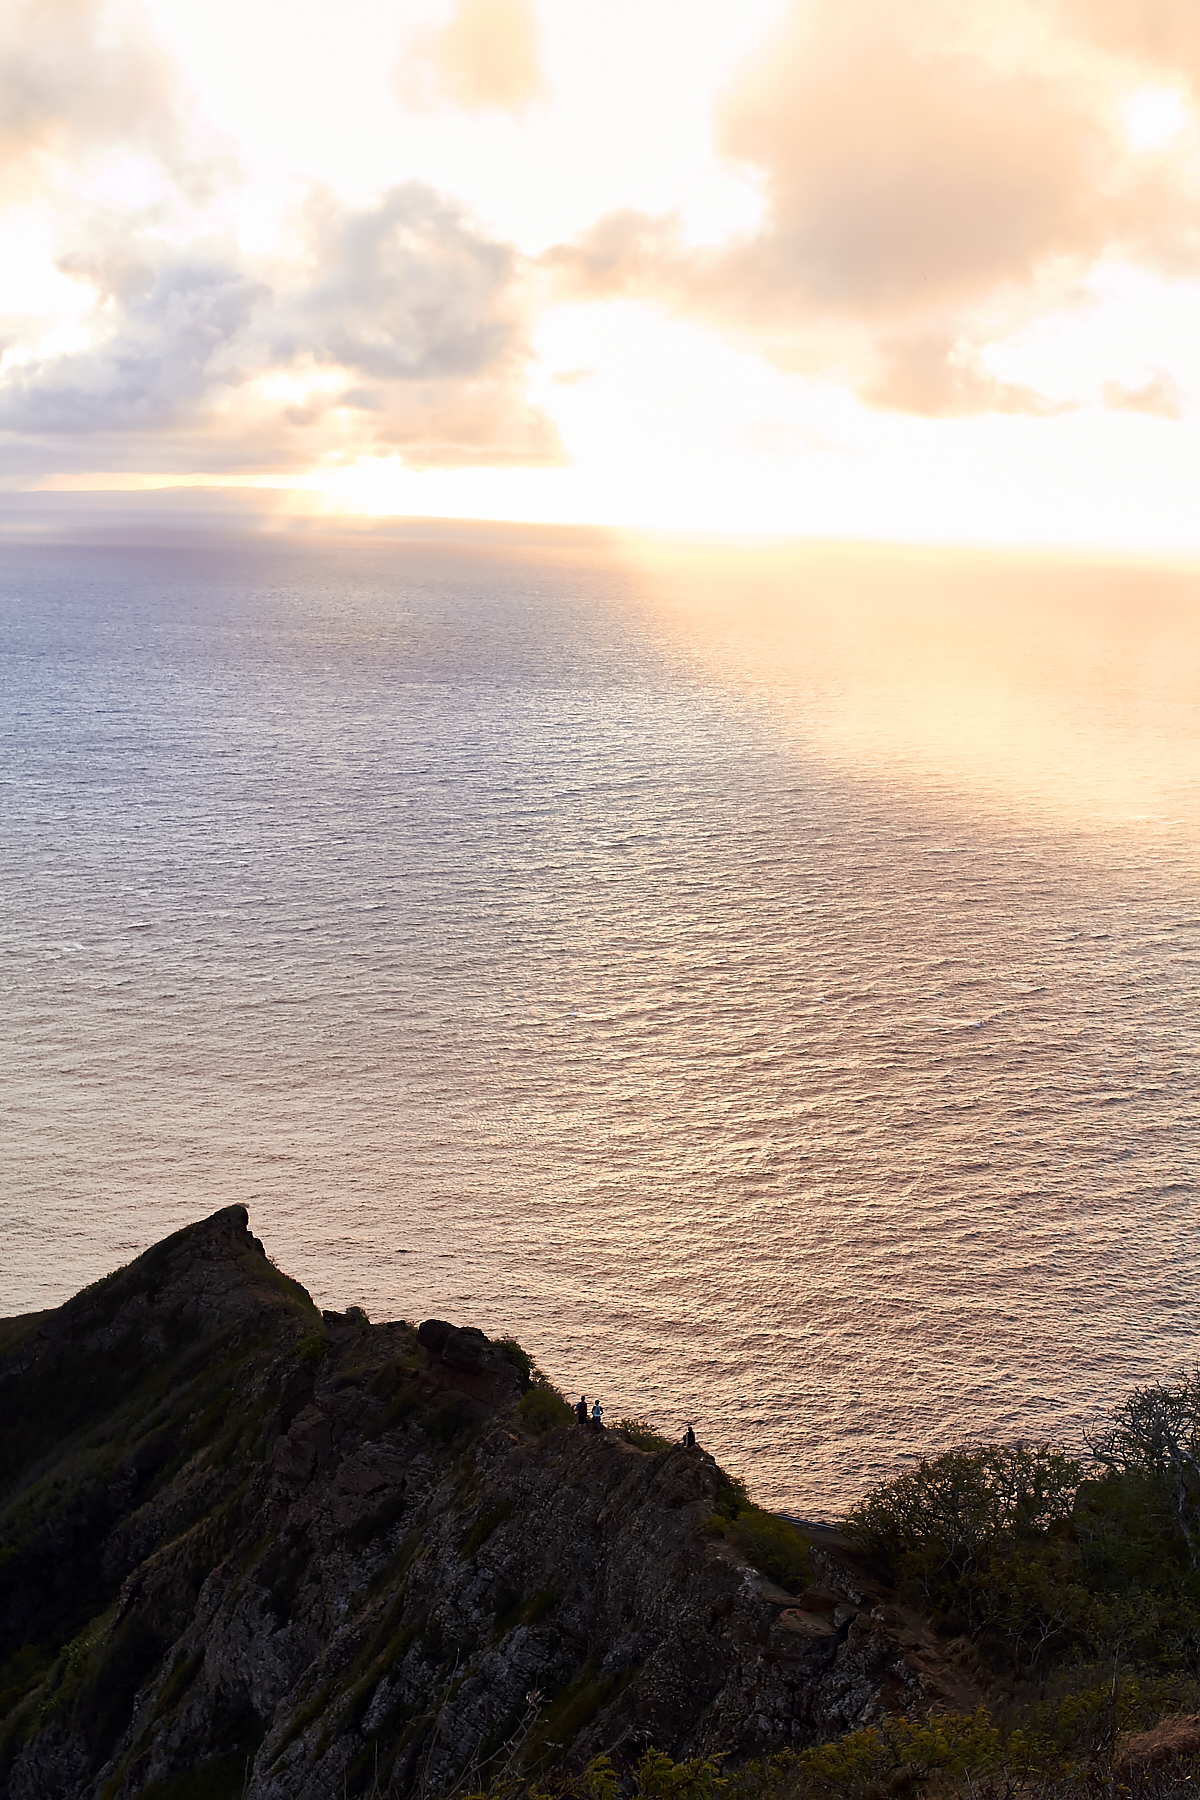 Hawaii, Oahu, Koko Head Sunrise